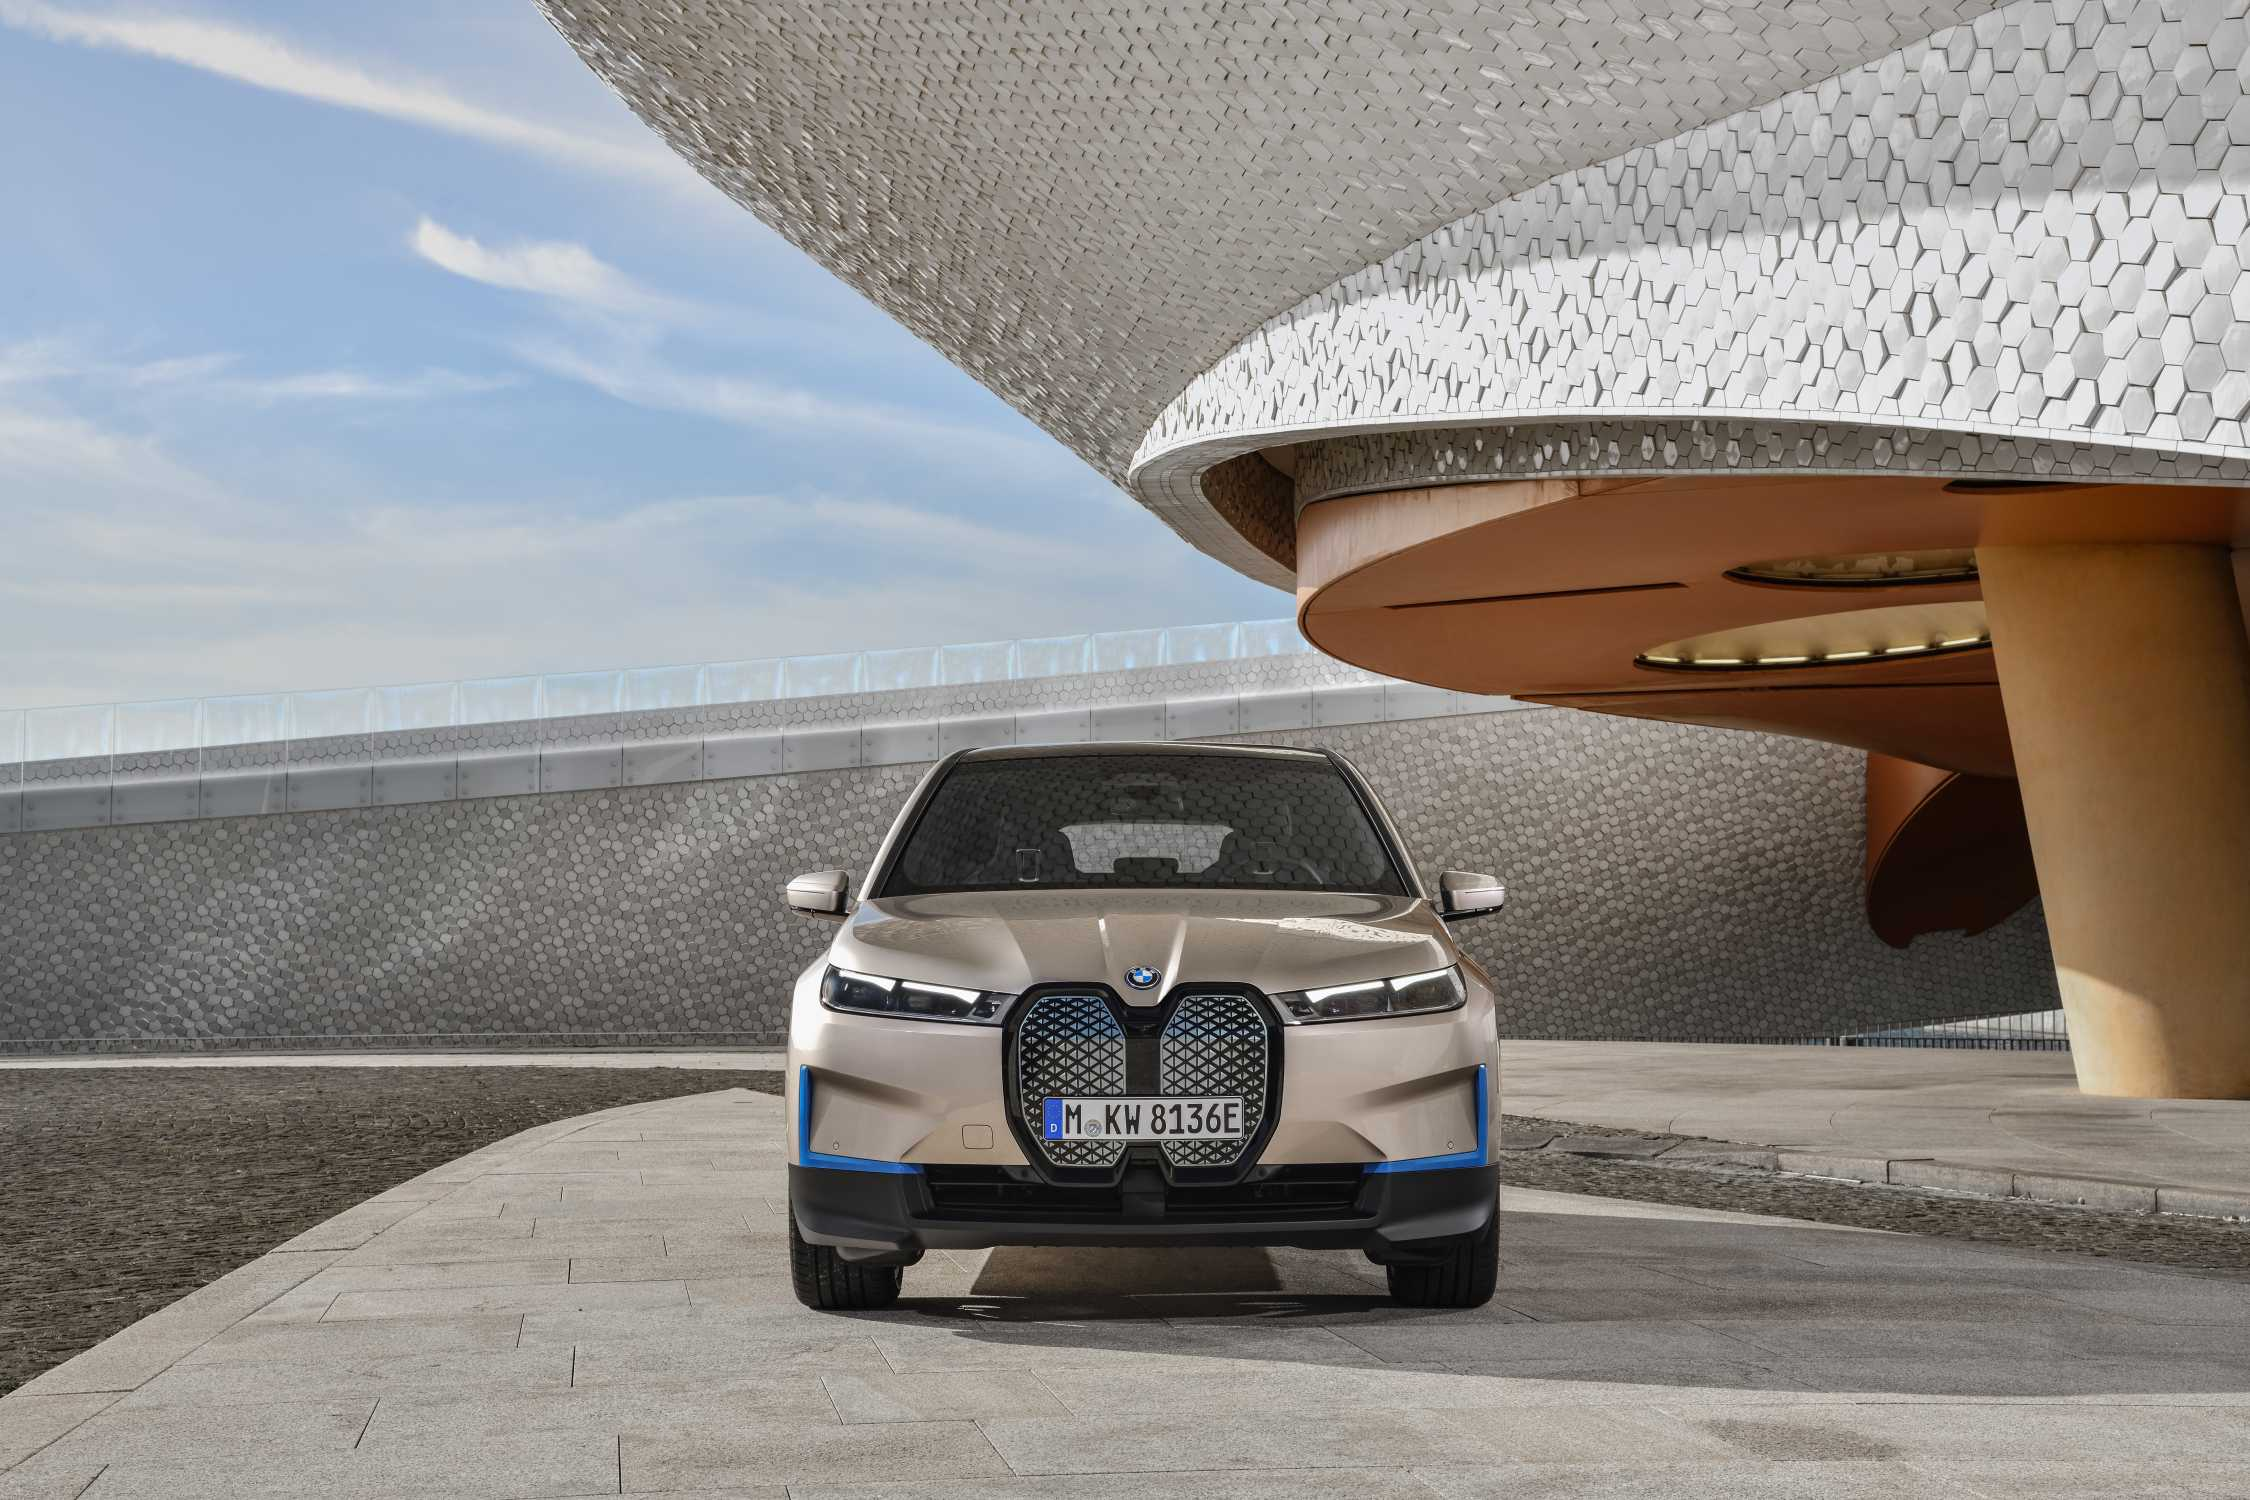 www.press.bmwgroup.com